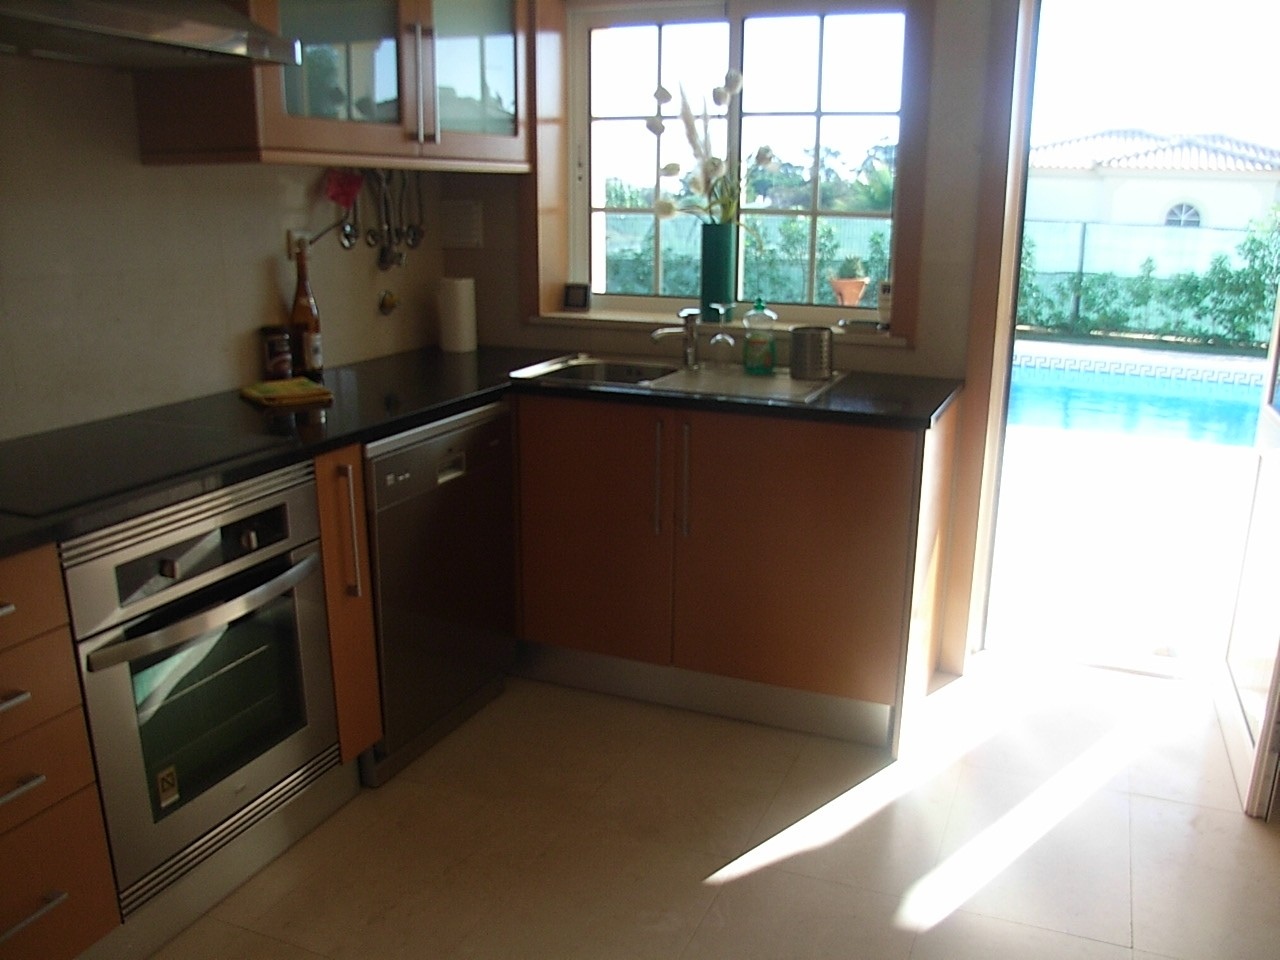 Fully equipped kitchen with sea views, overlooking pool & established garden.